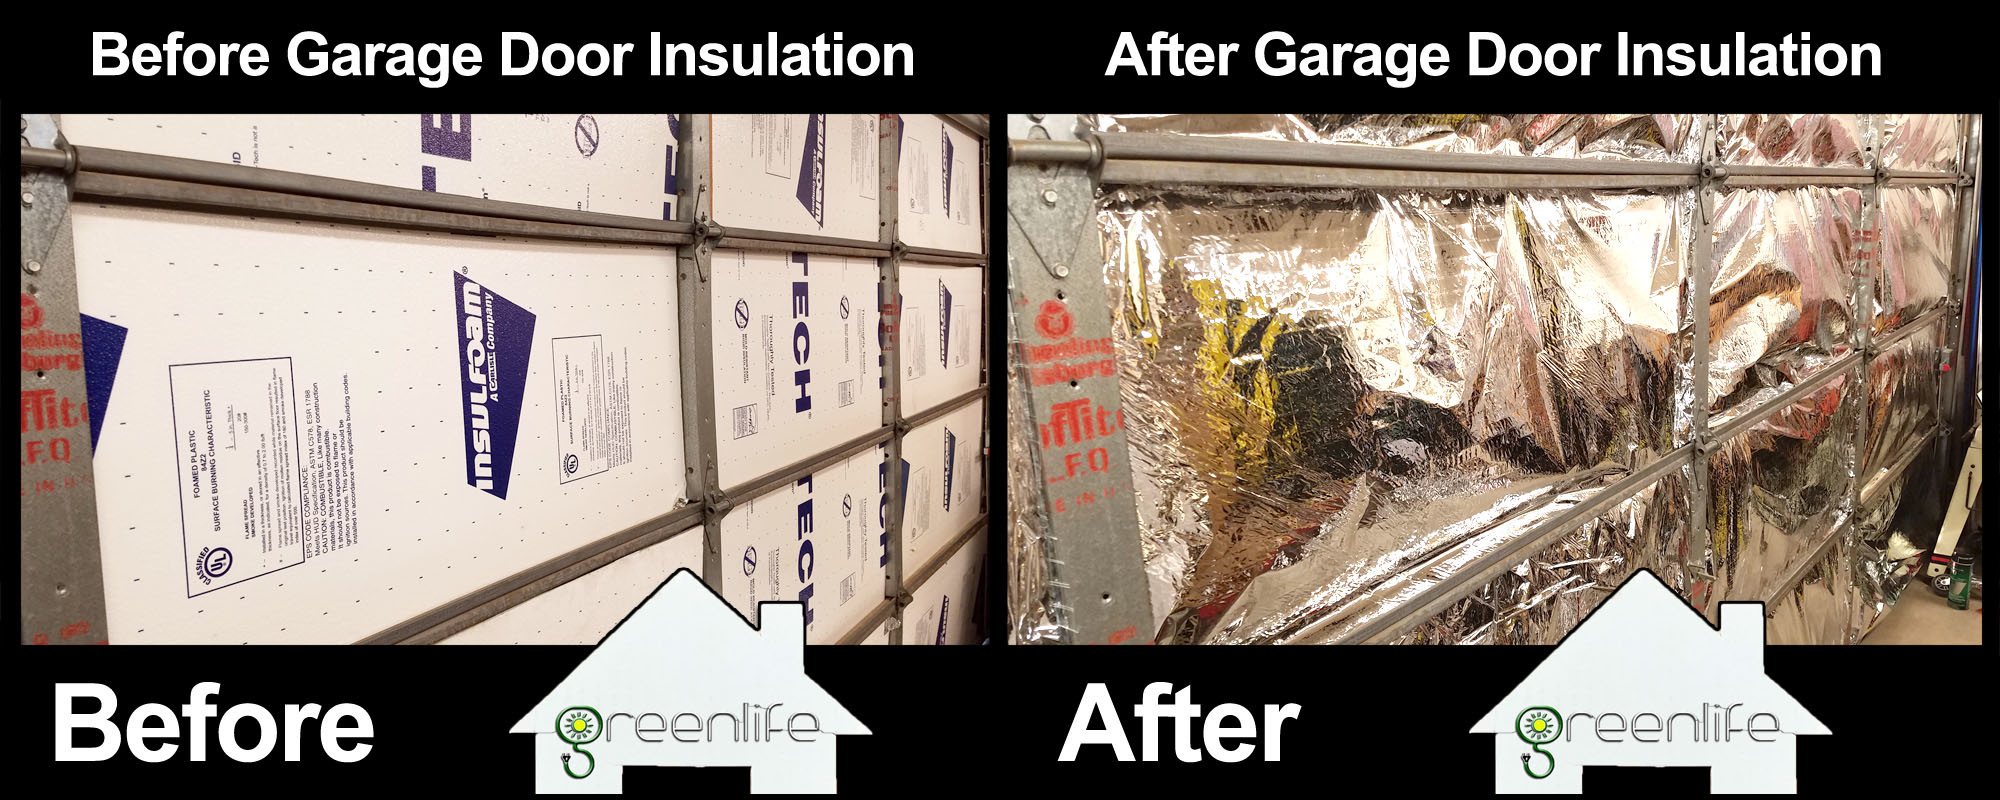 Garage Door Insulation Before & After Photo